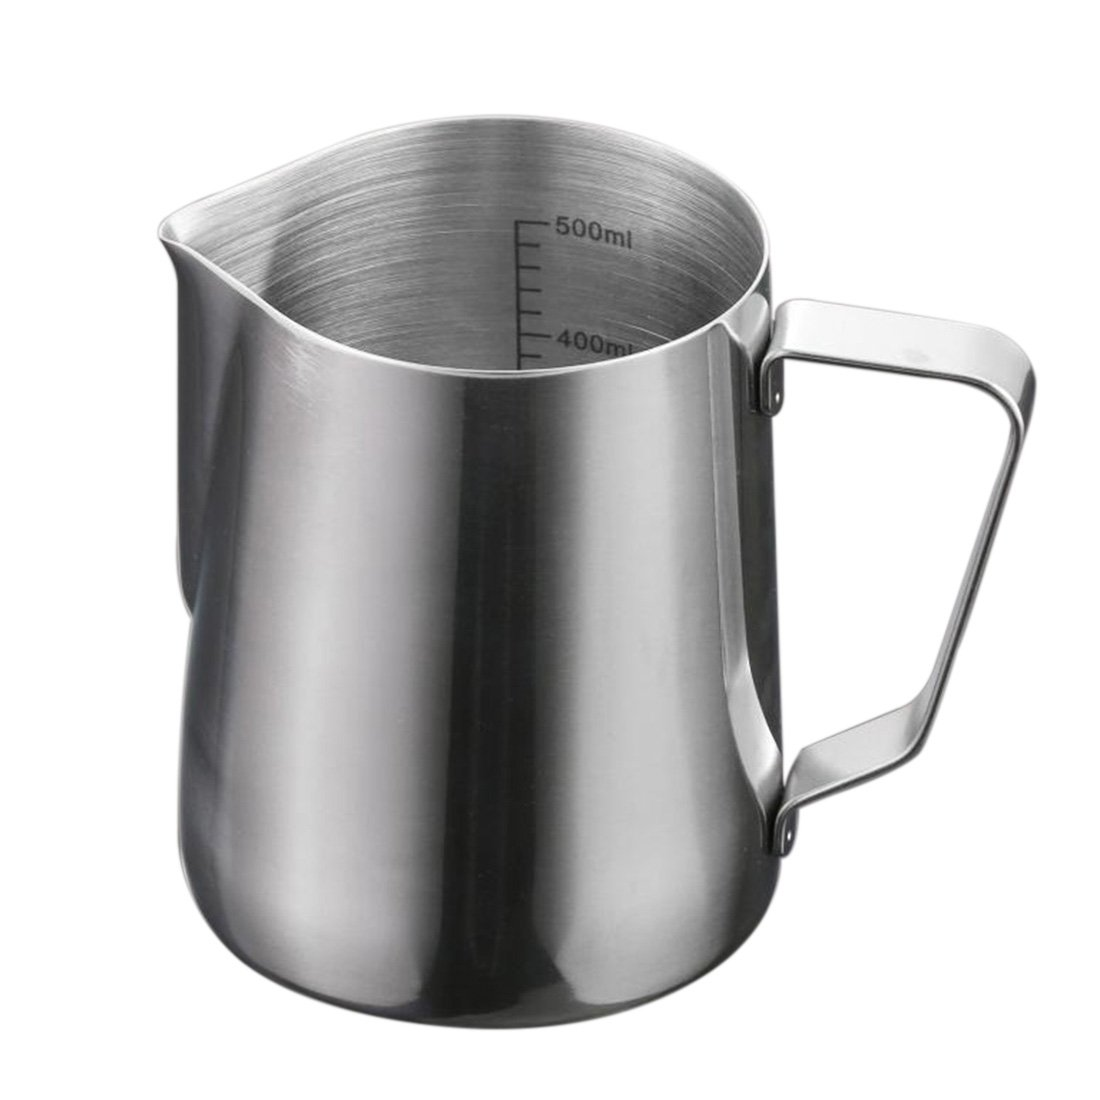 Milk Frothing Pitcher, Yamix Stainless Steel Creamer Frothing Pitcher Milk Cup Professional Latte Milk Steaming Pitcher 20oz/550ml for Espresso Machine, Coffee Milk Frother and Latte Maker